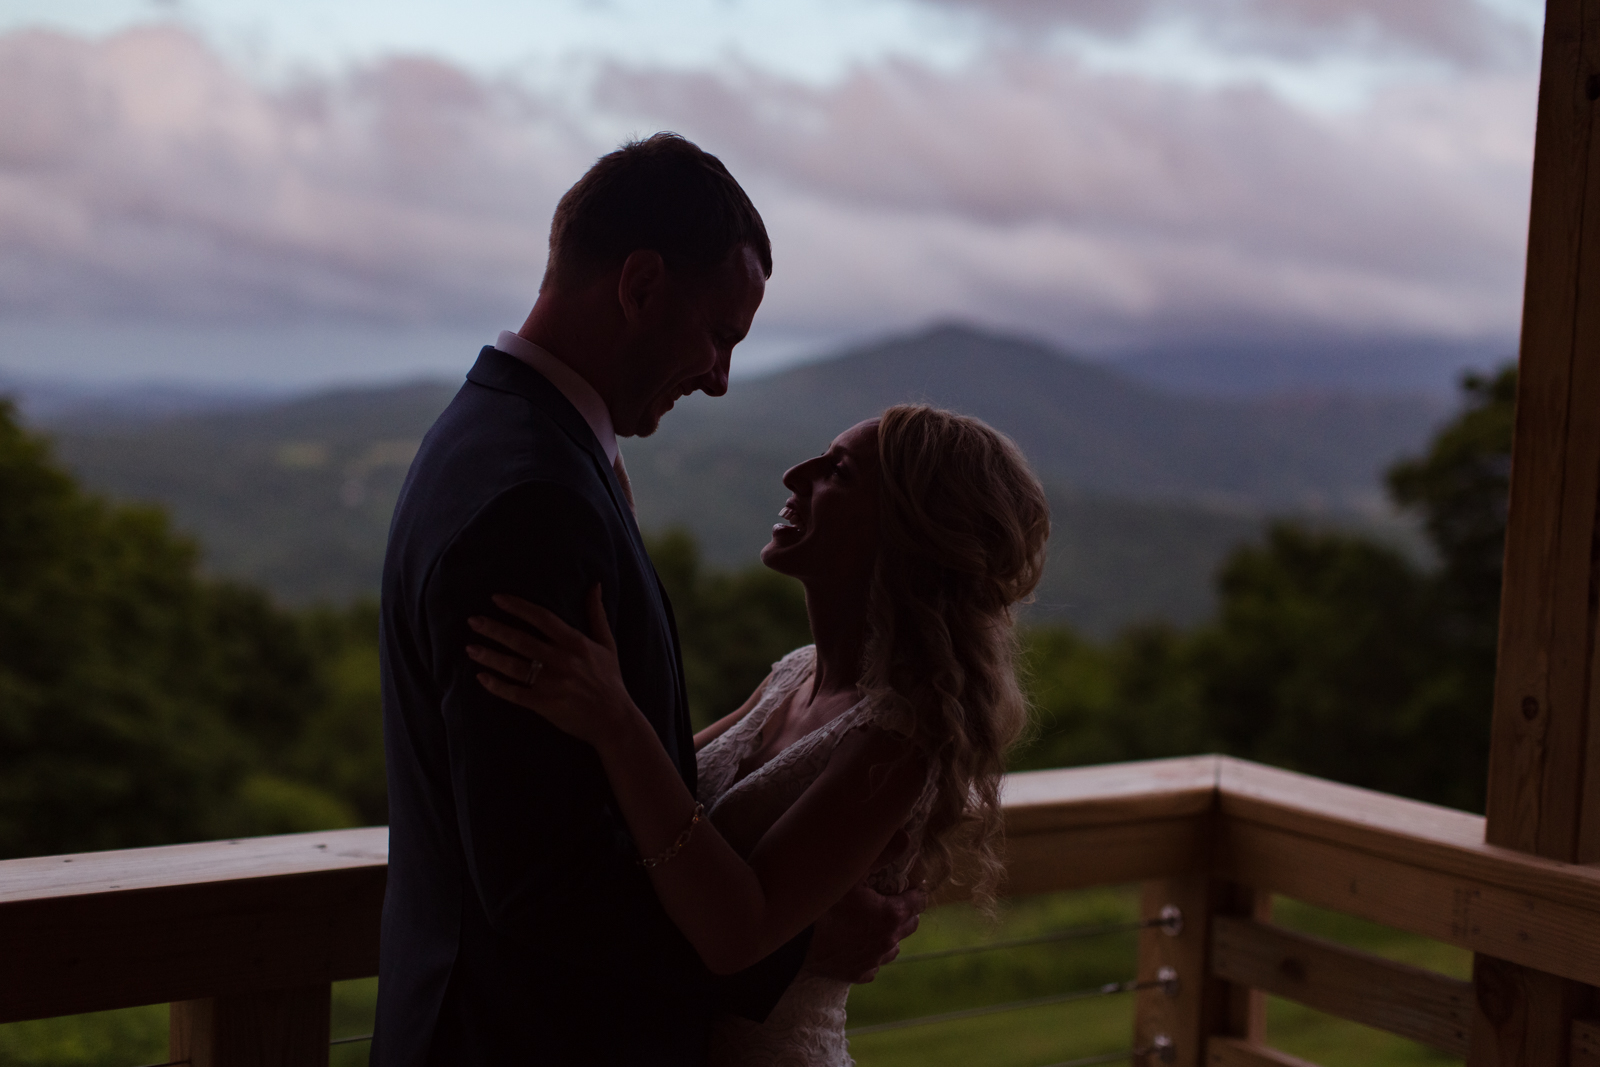 Poetry-&-Motion-High-Country-Wedding-Photography-Overlook-Barn (29 of 35).jpg